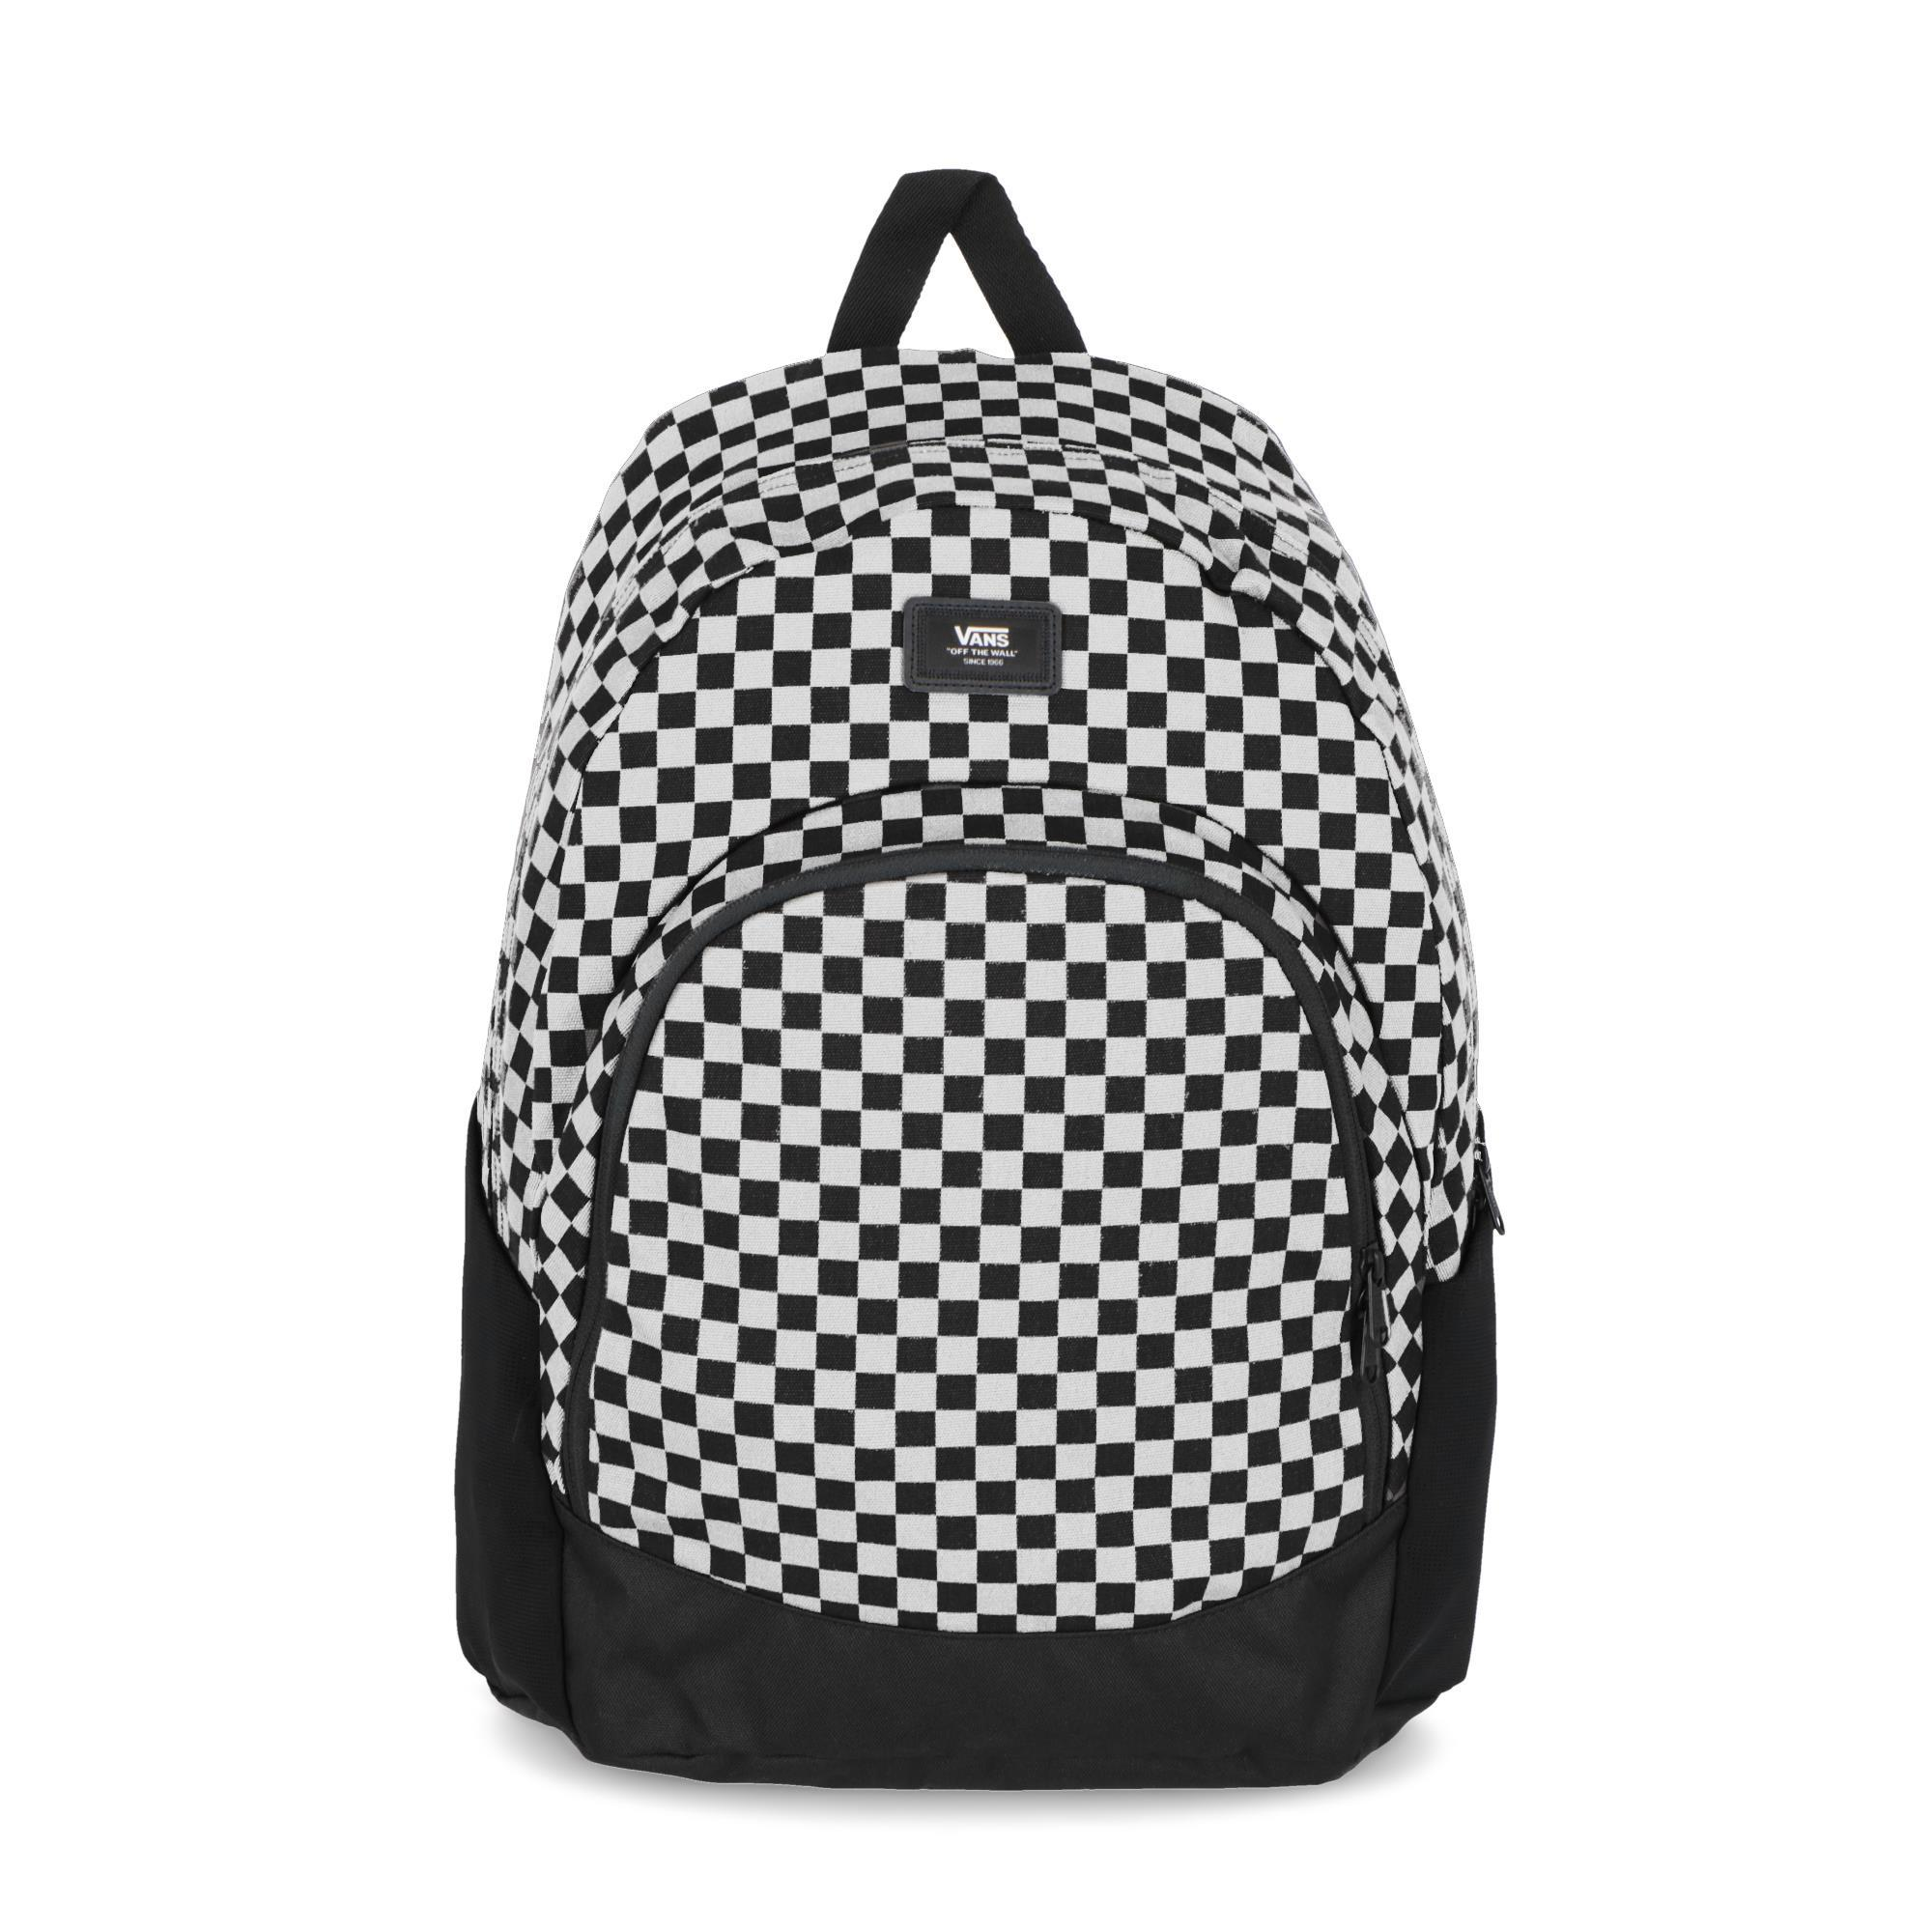 e4b5430c5c Vans Van Doren Original Backpack Black White | Treesse